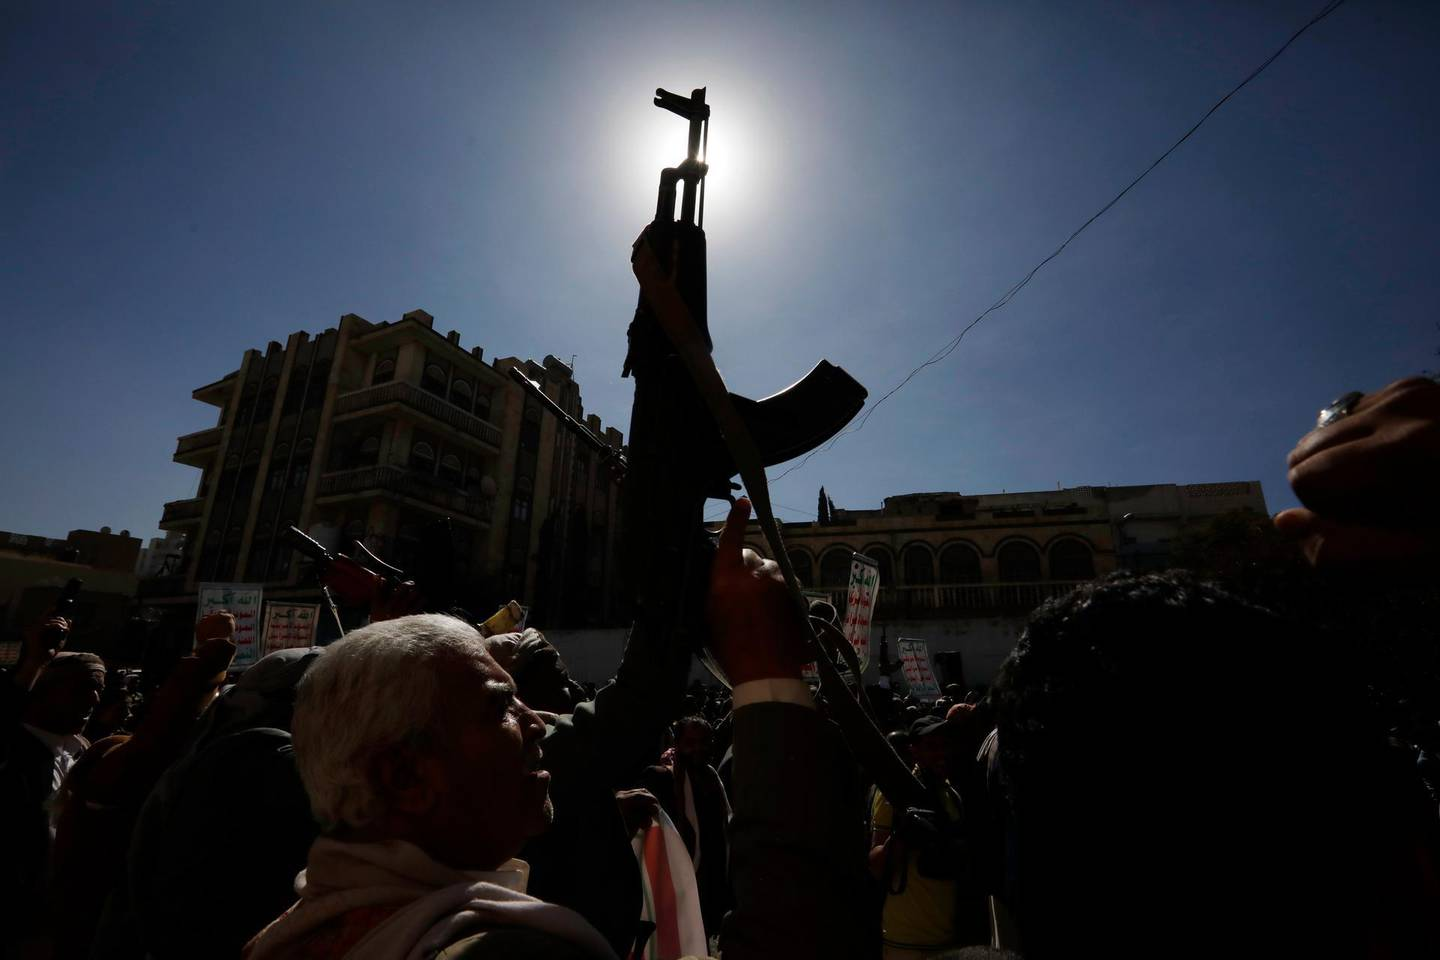 epa08950869 Yemenis hold up guns during an anti-US protest in Sana'a, Yemen, 20 January 2021. According to reports, US Secretary of State Tony Blinken has pledged to immediately review the US terrorist designation of Yemen's Houthi movement a day after Donald Trump's government designated it as a Foreign Terrorist Organization (FTO).  EPA/YAHYA ARHAB